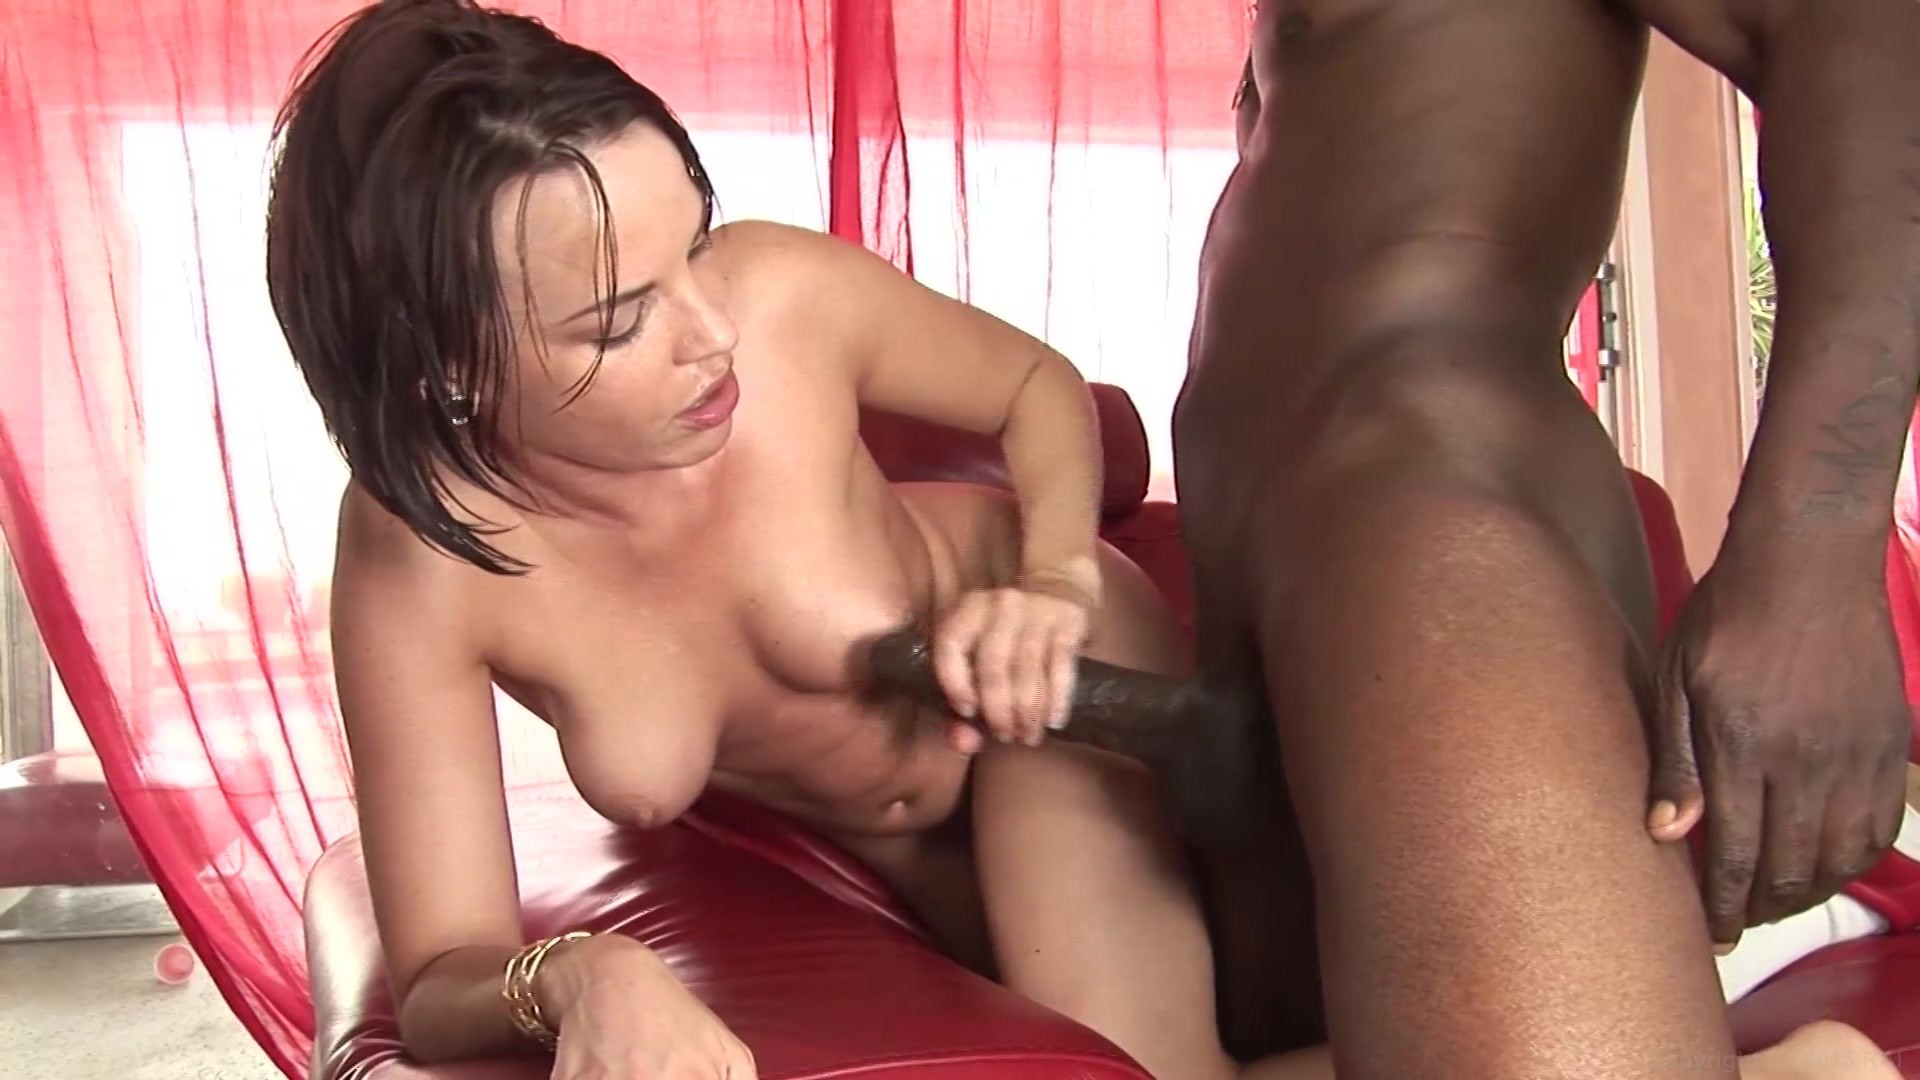 Vintage hairy pussy creampie compilation beeg photoz